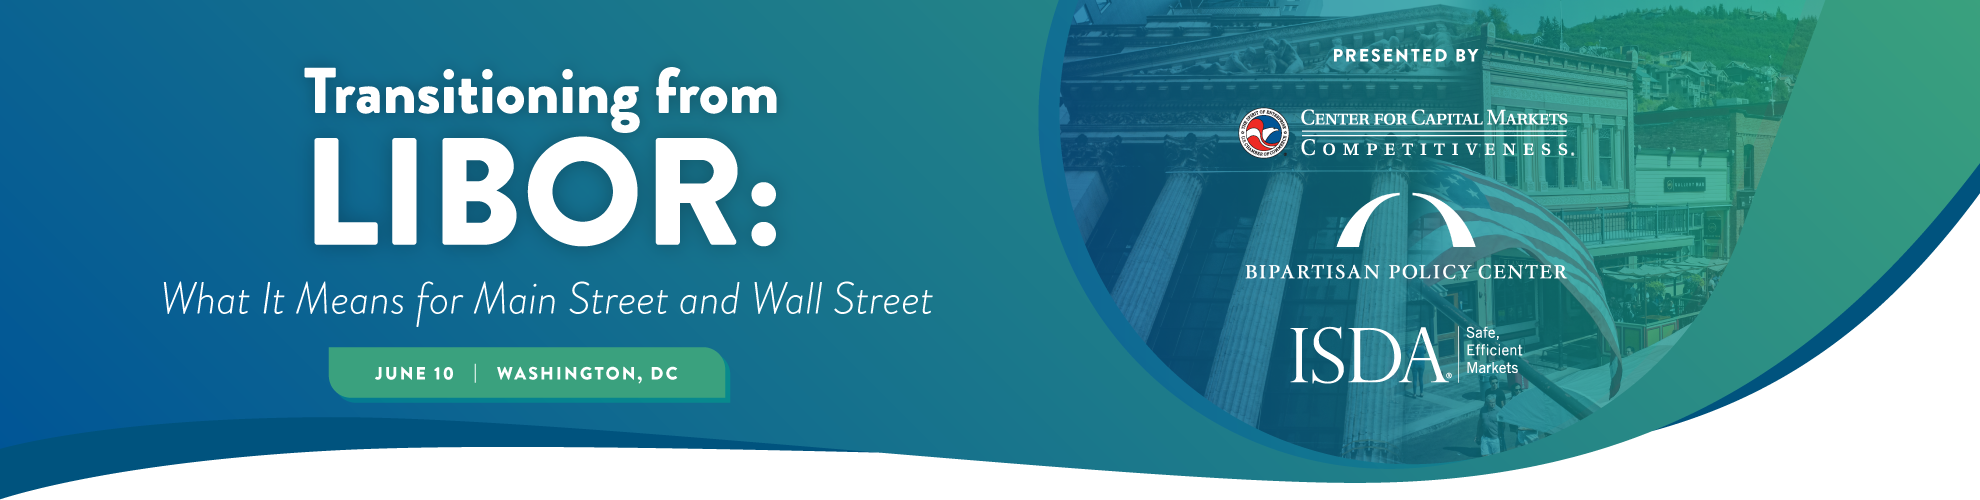 Transitioning from LIBOR: What it Means for Main Street and Wall Street